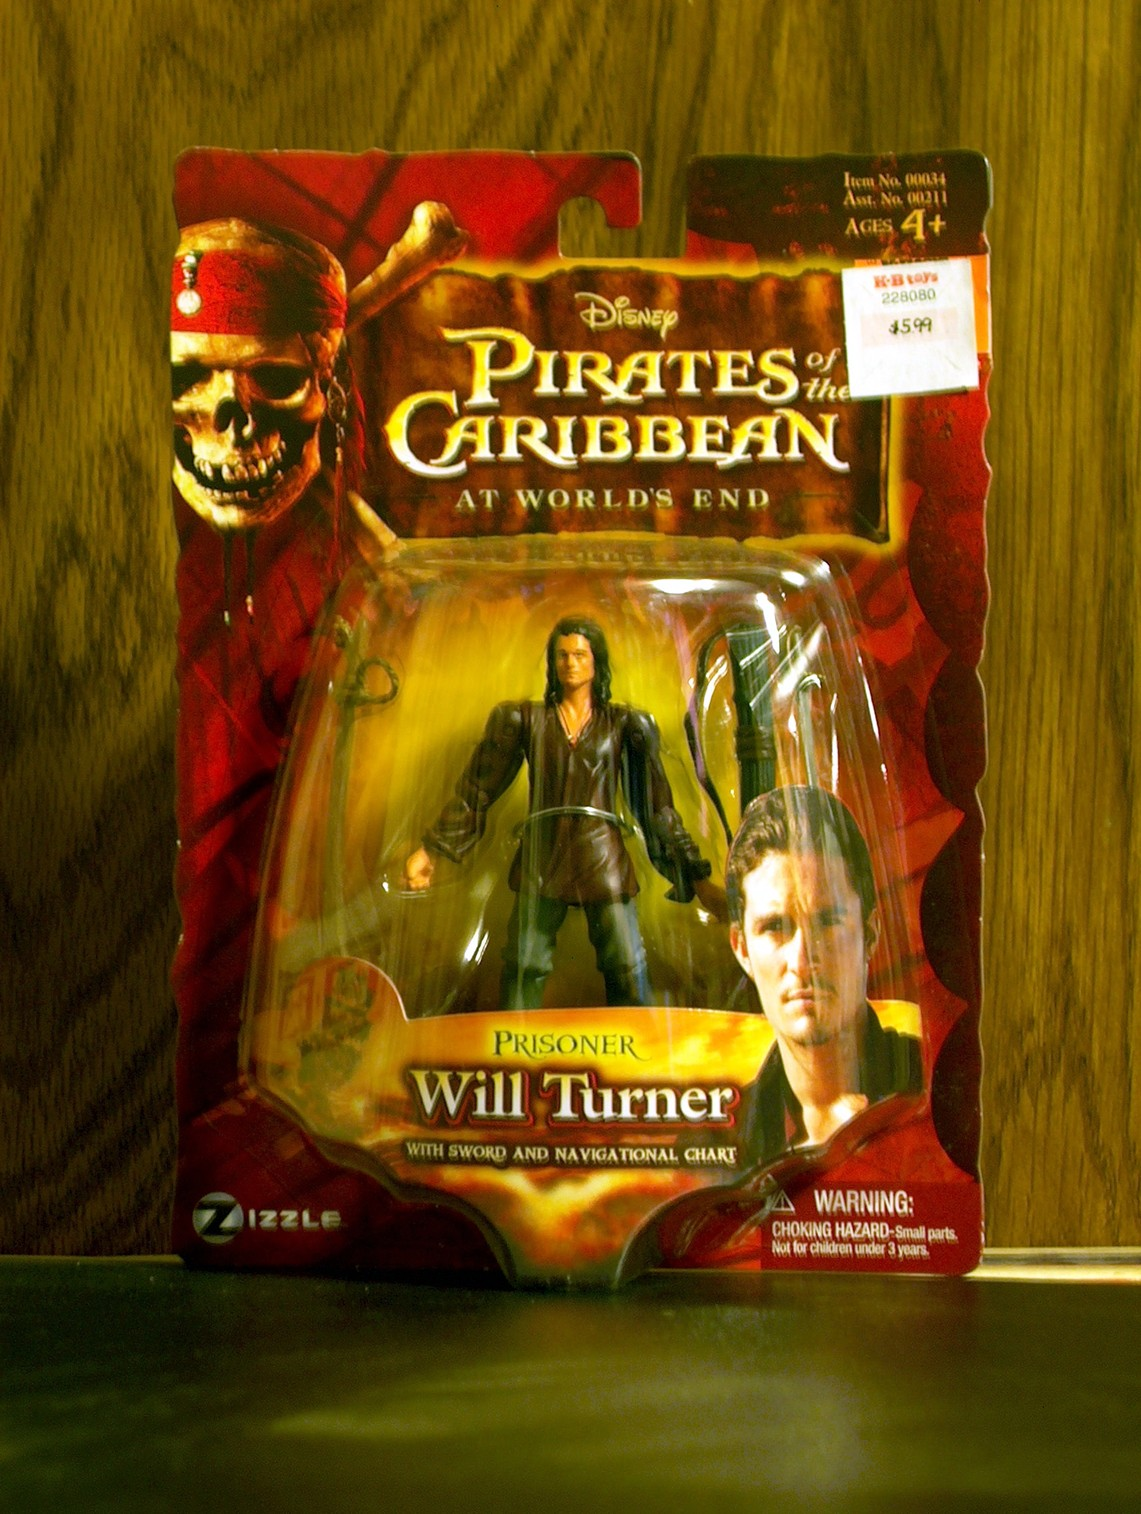 Will Turner (Prisoner)